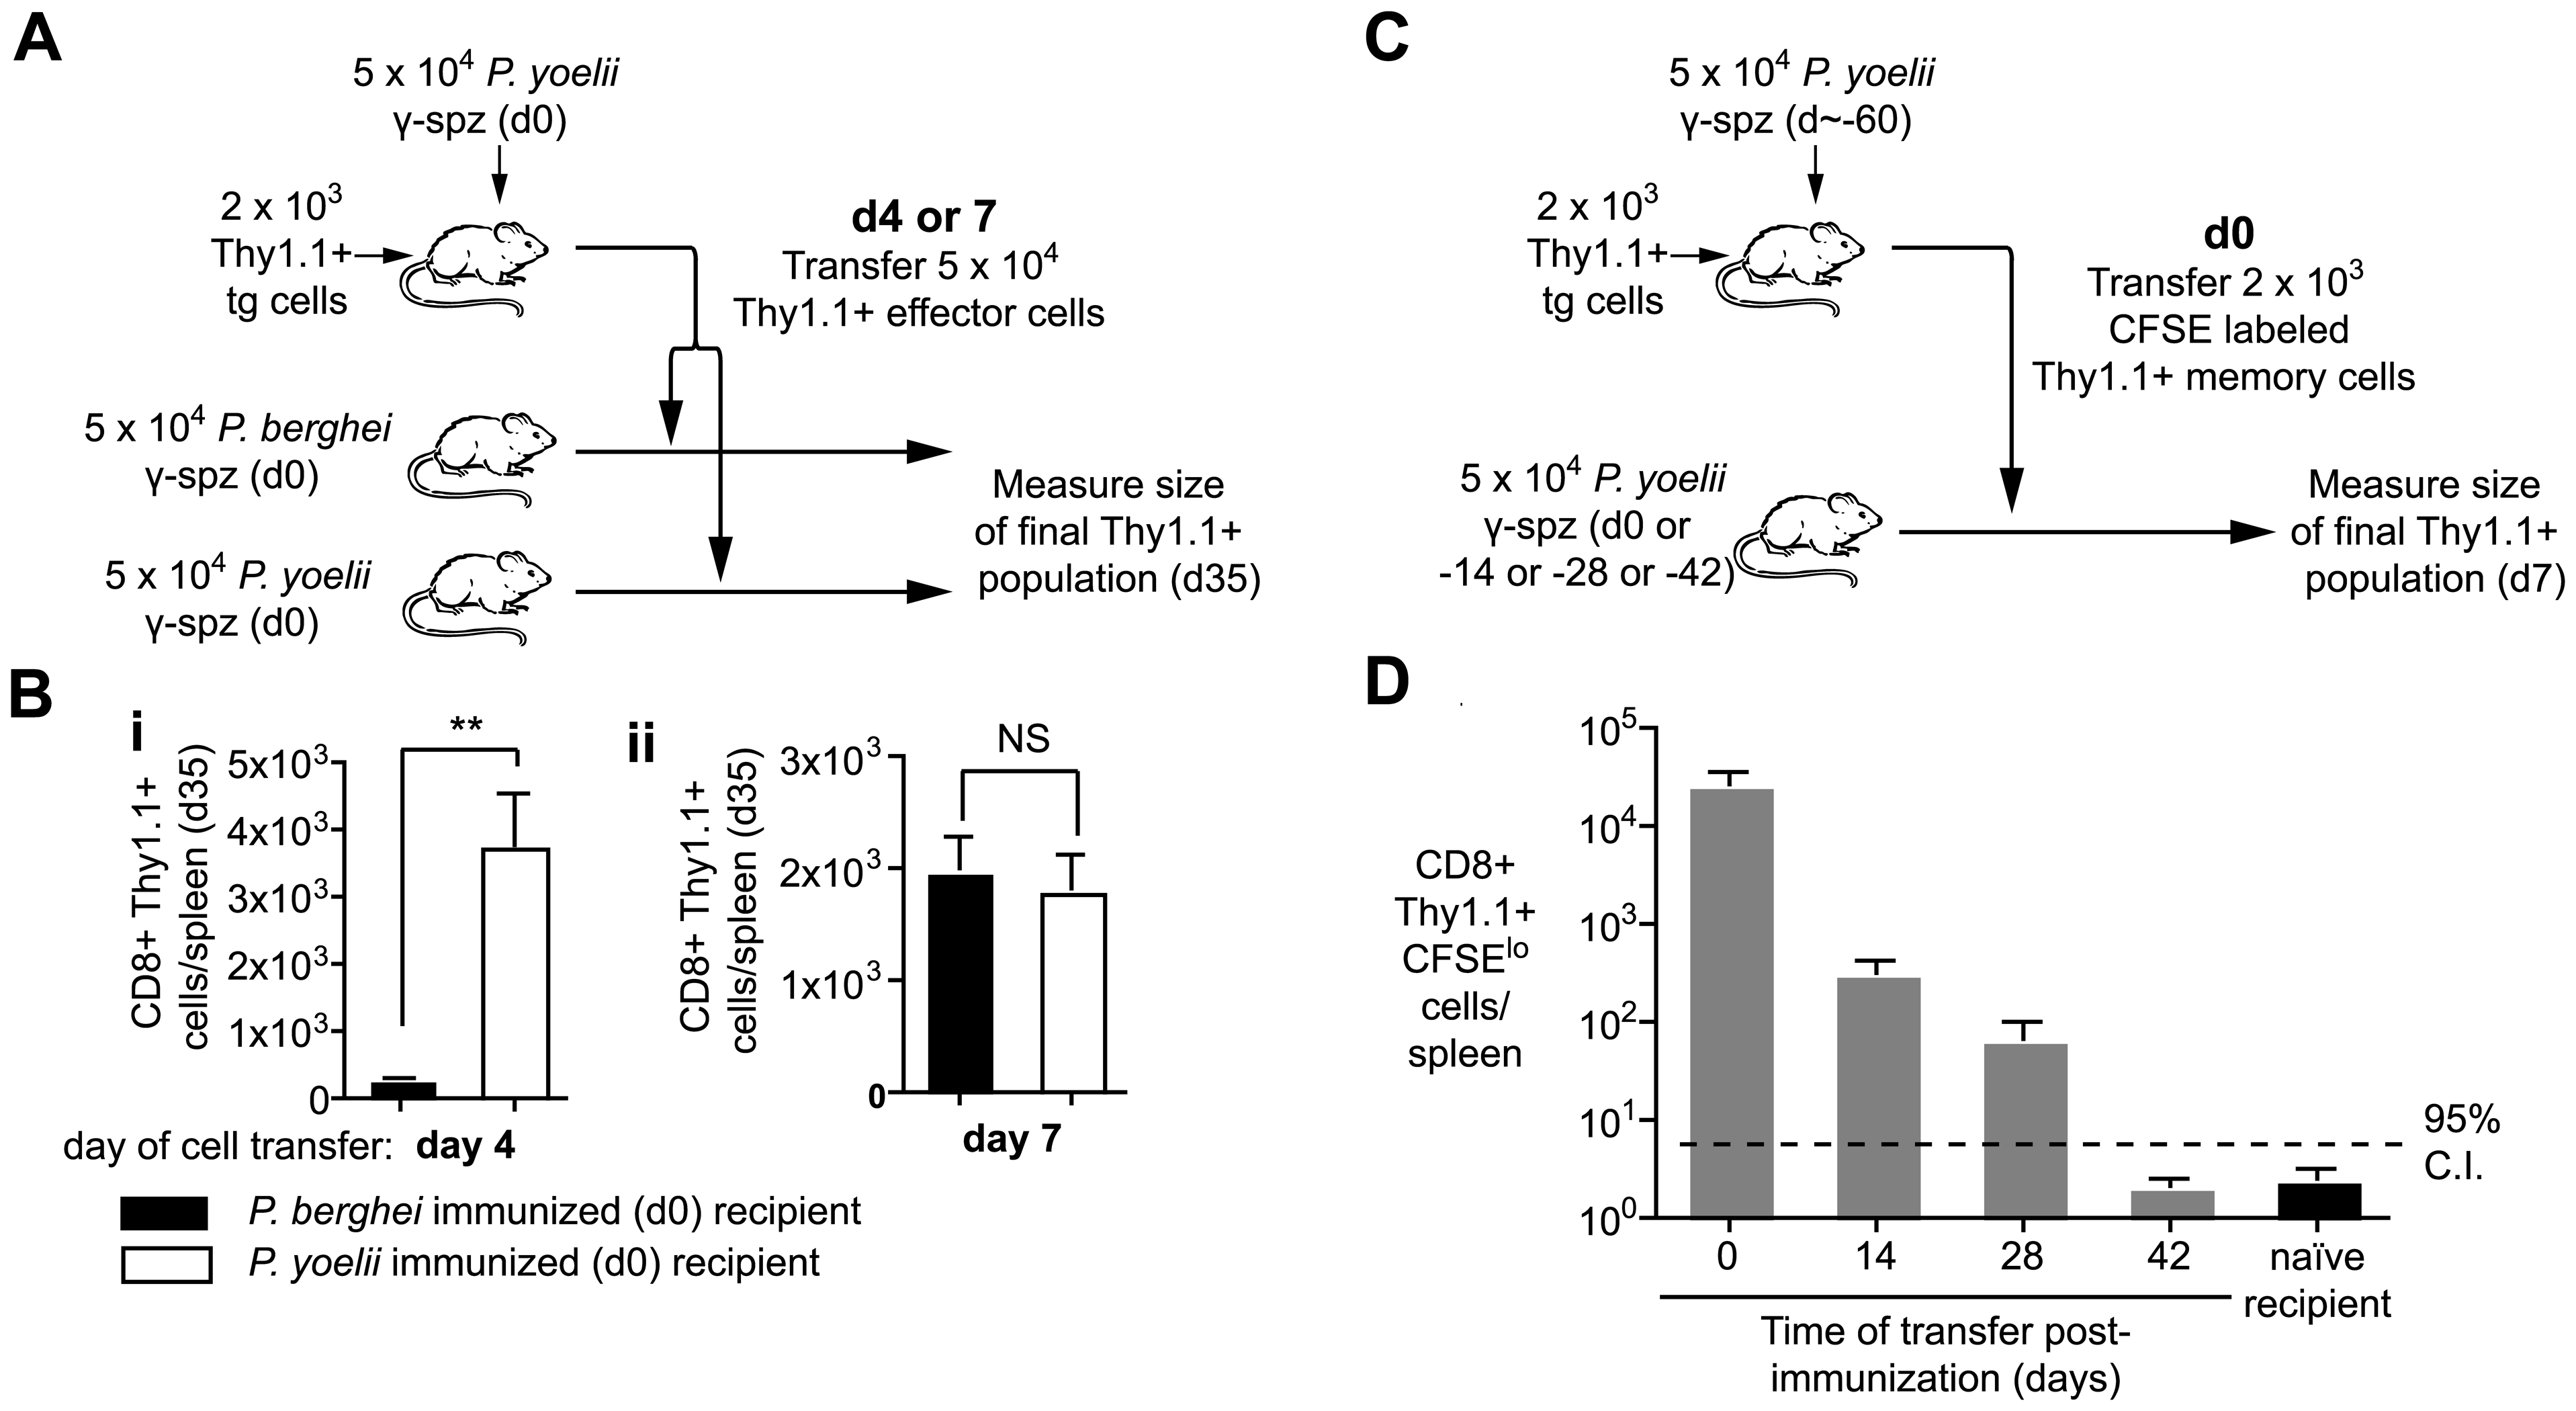 Prolonged antigen presentation is required for optimal CD8+ memory formation.